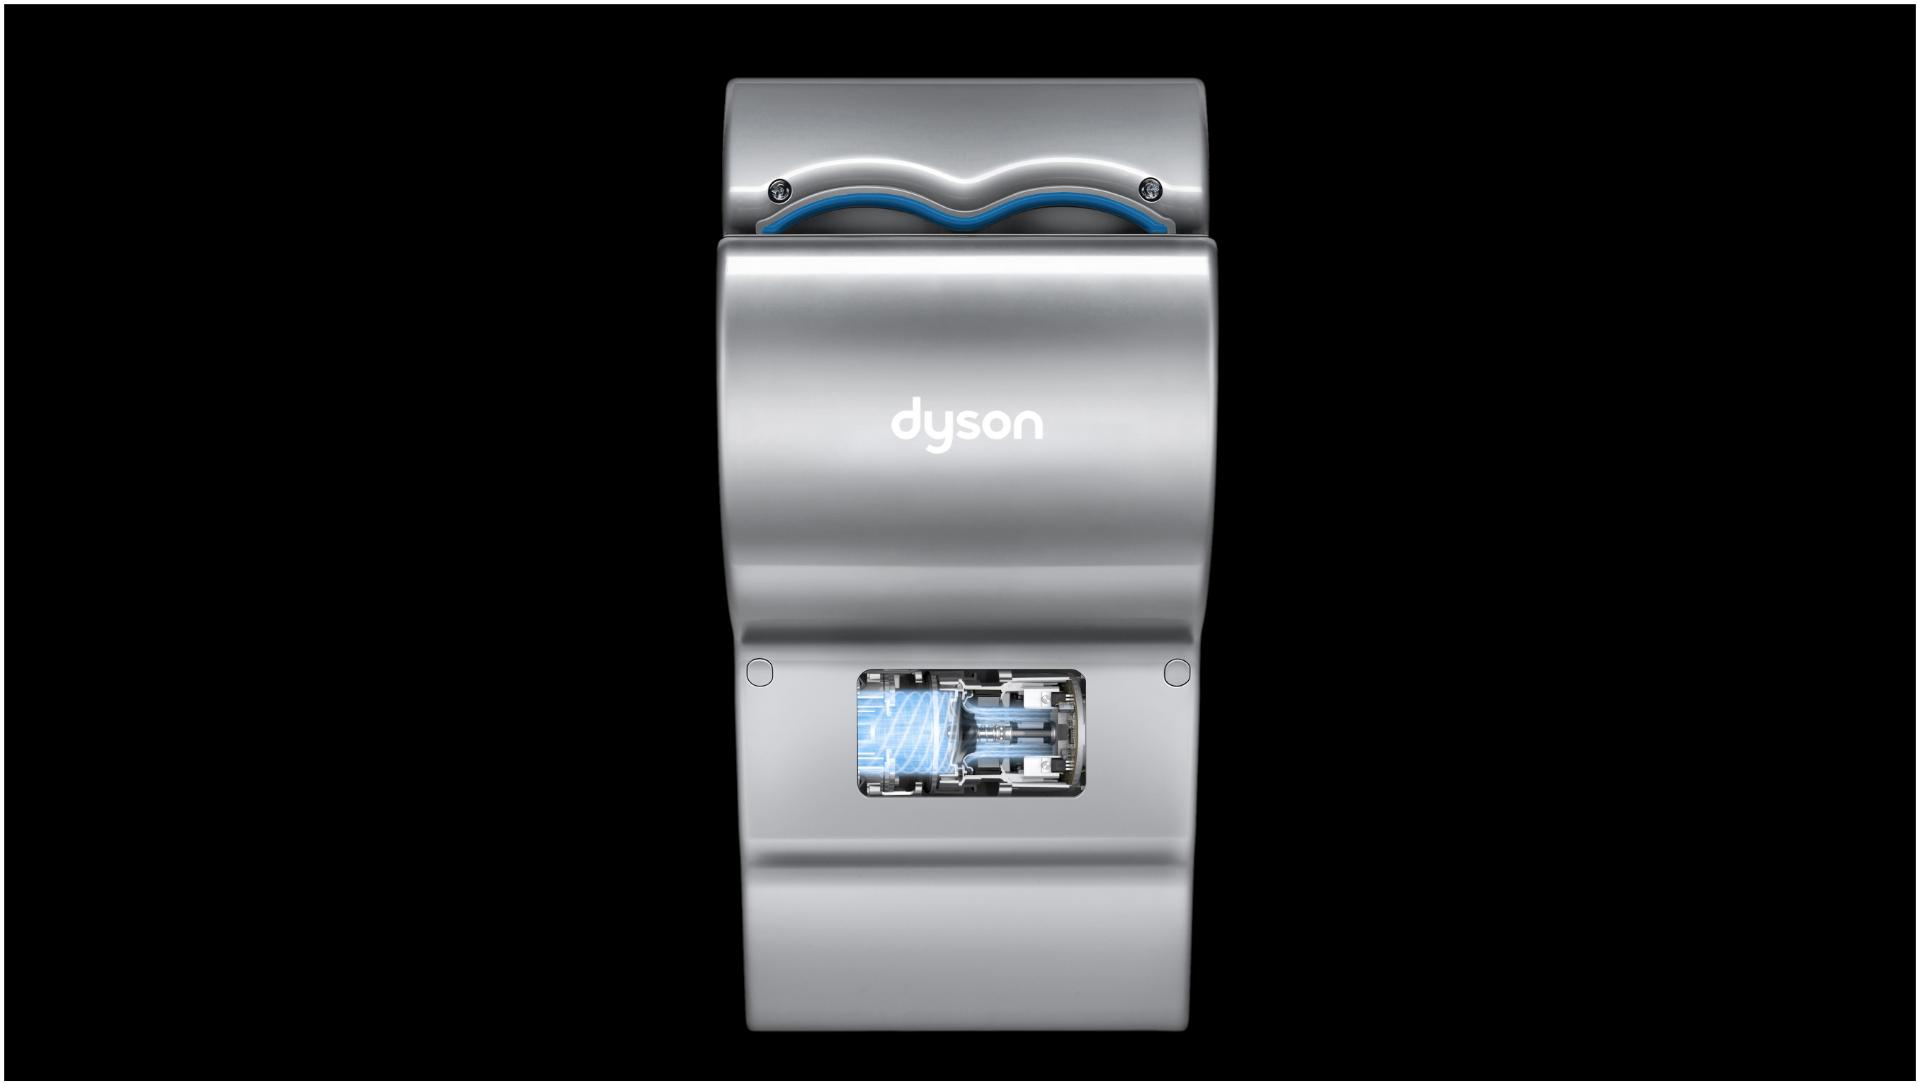 Dyson Airblade db han d dryer with motor exposed